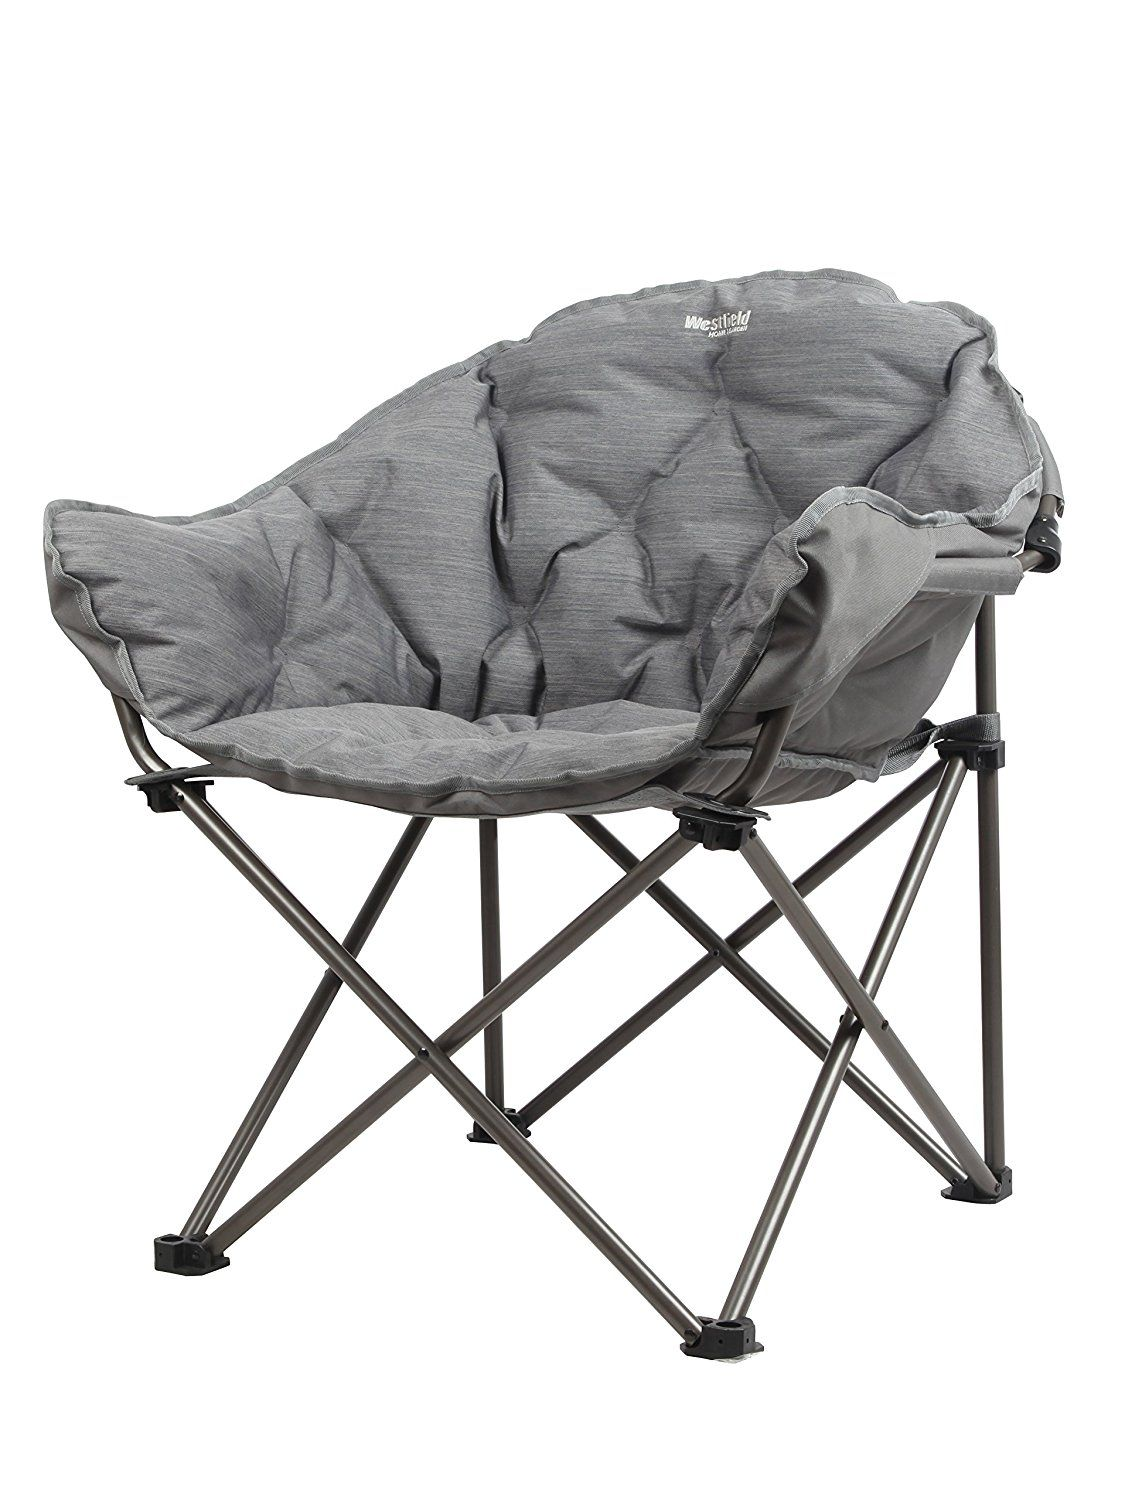 Westfield Juwel Moon Foldable Camping Chair >>> Visit the